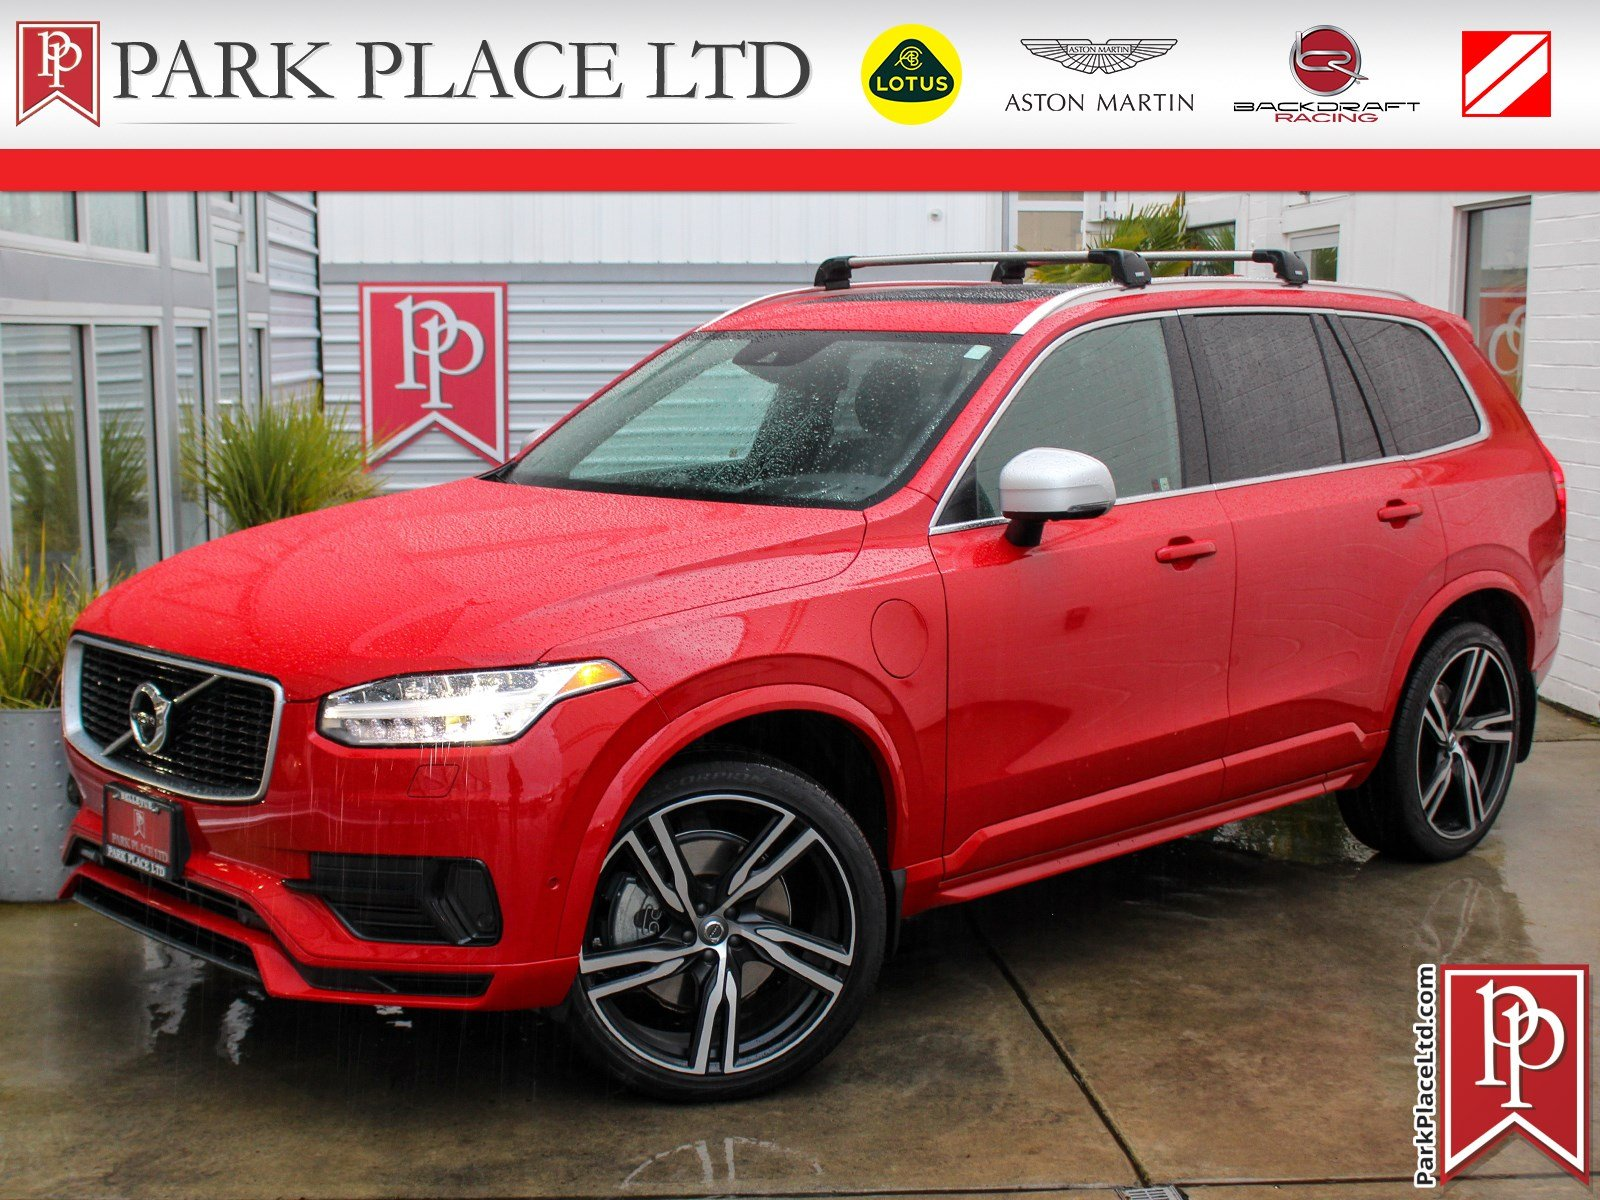 Volvo T8 Hybrid Lovely Used 2016 Volvo Xc90 Hybrid at Park Place aston Martin